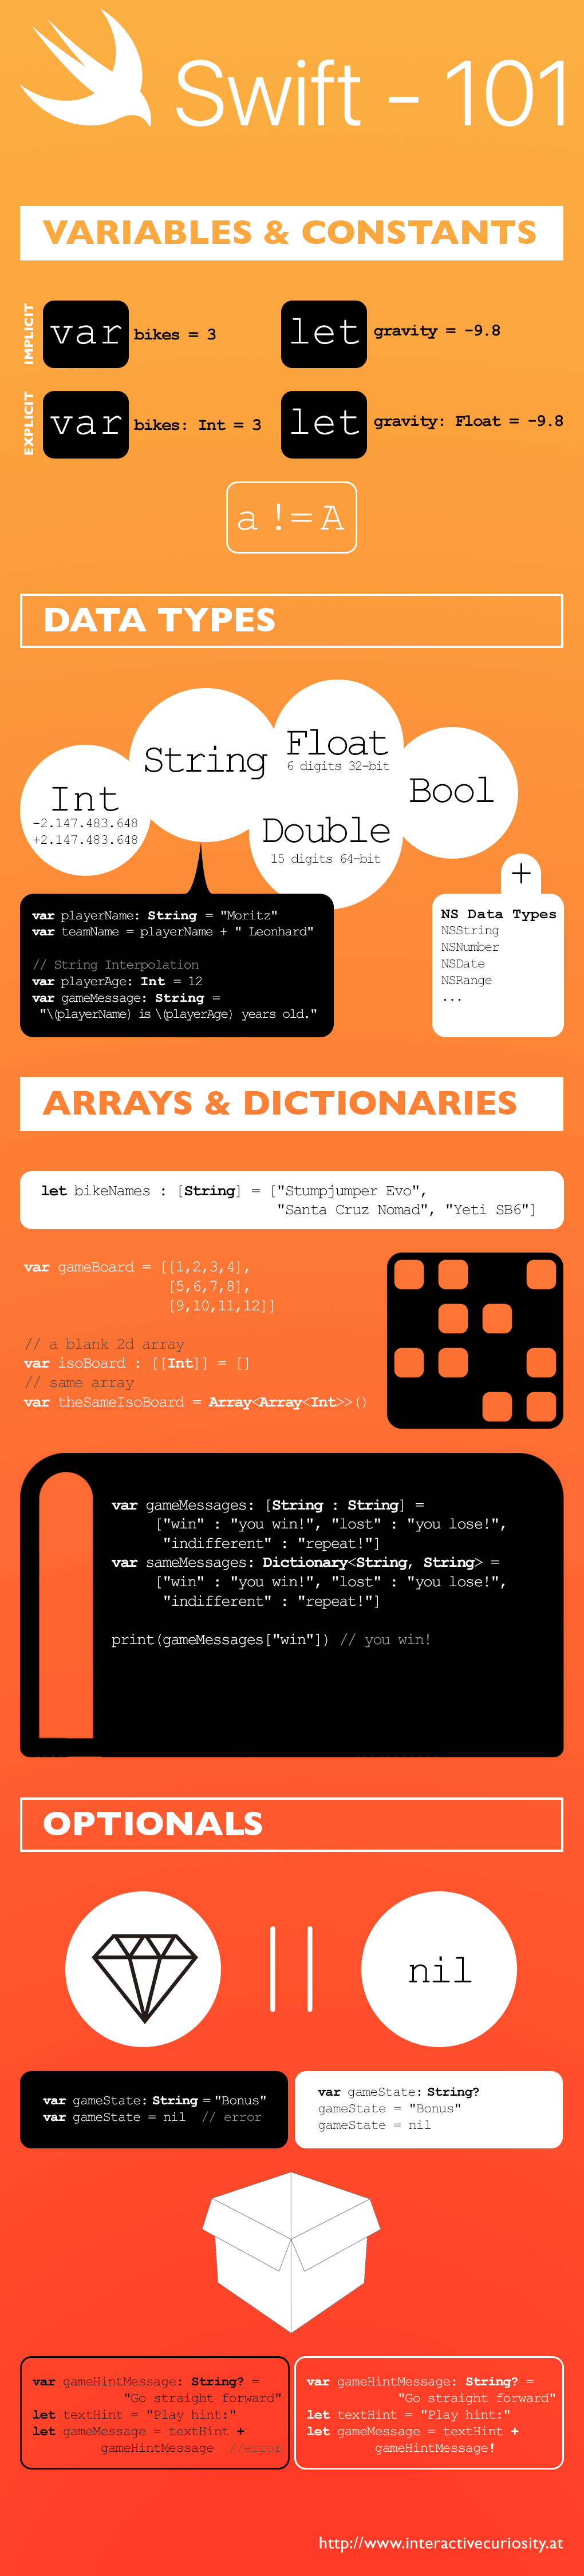 infographic swift 101